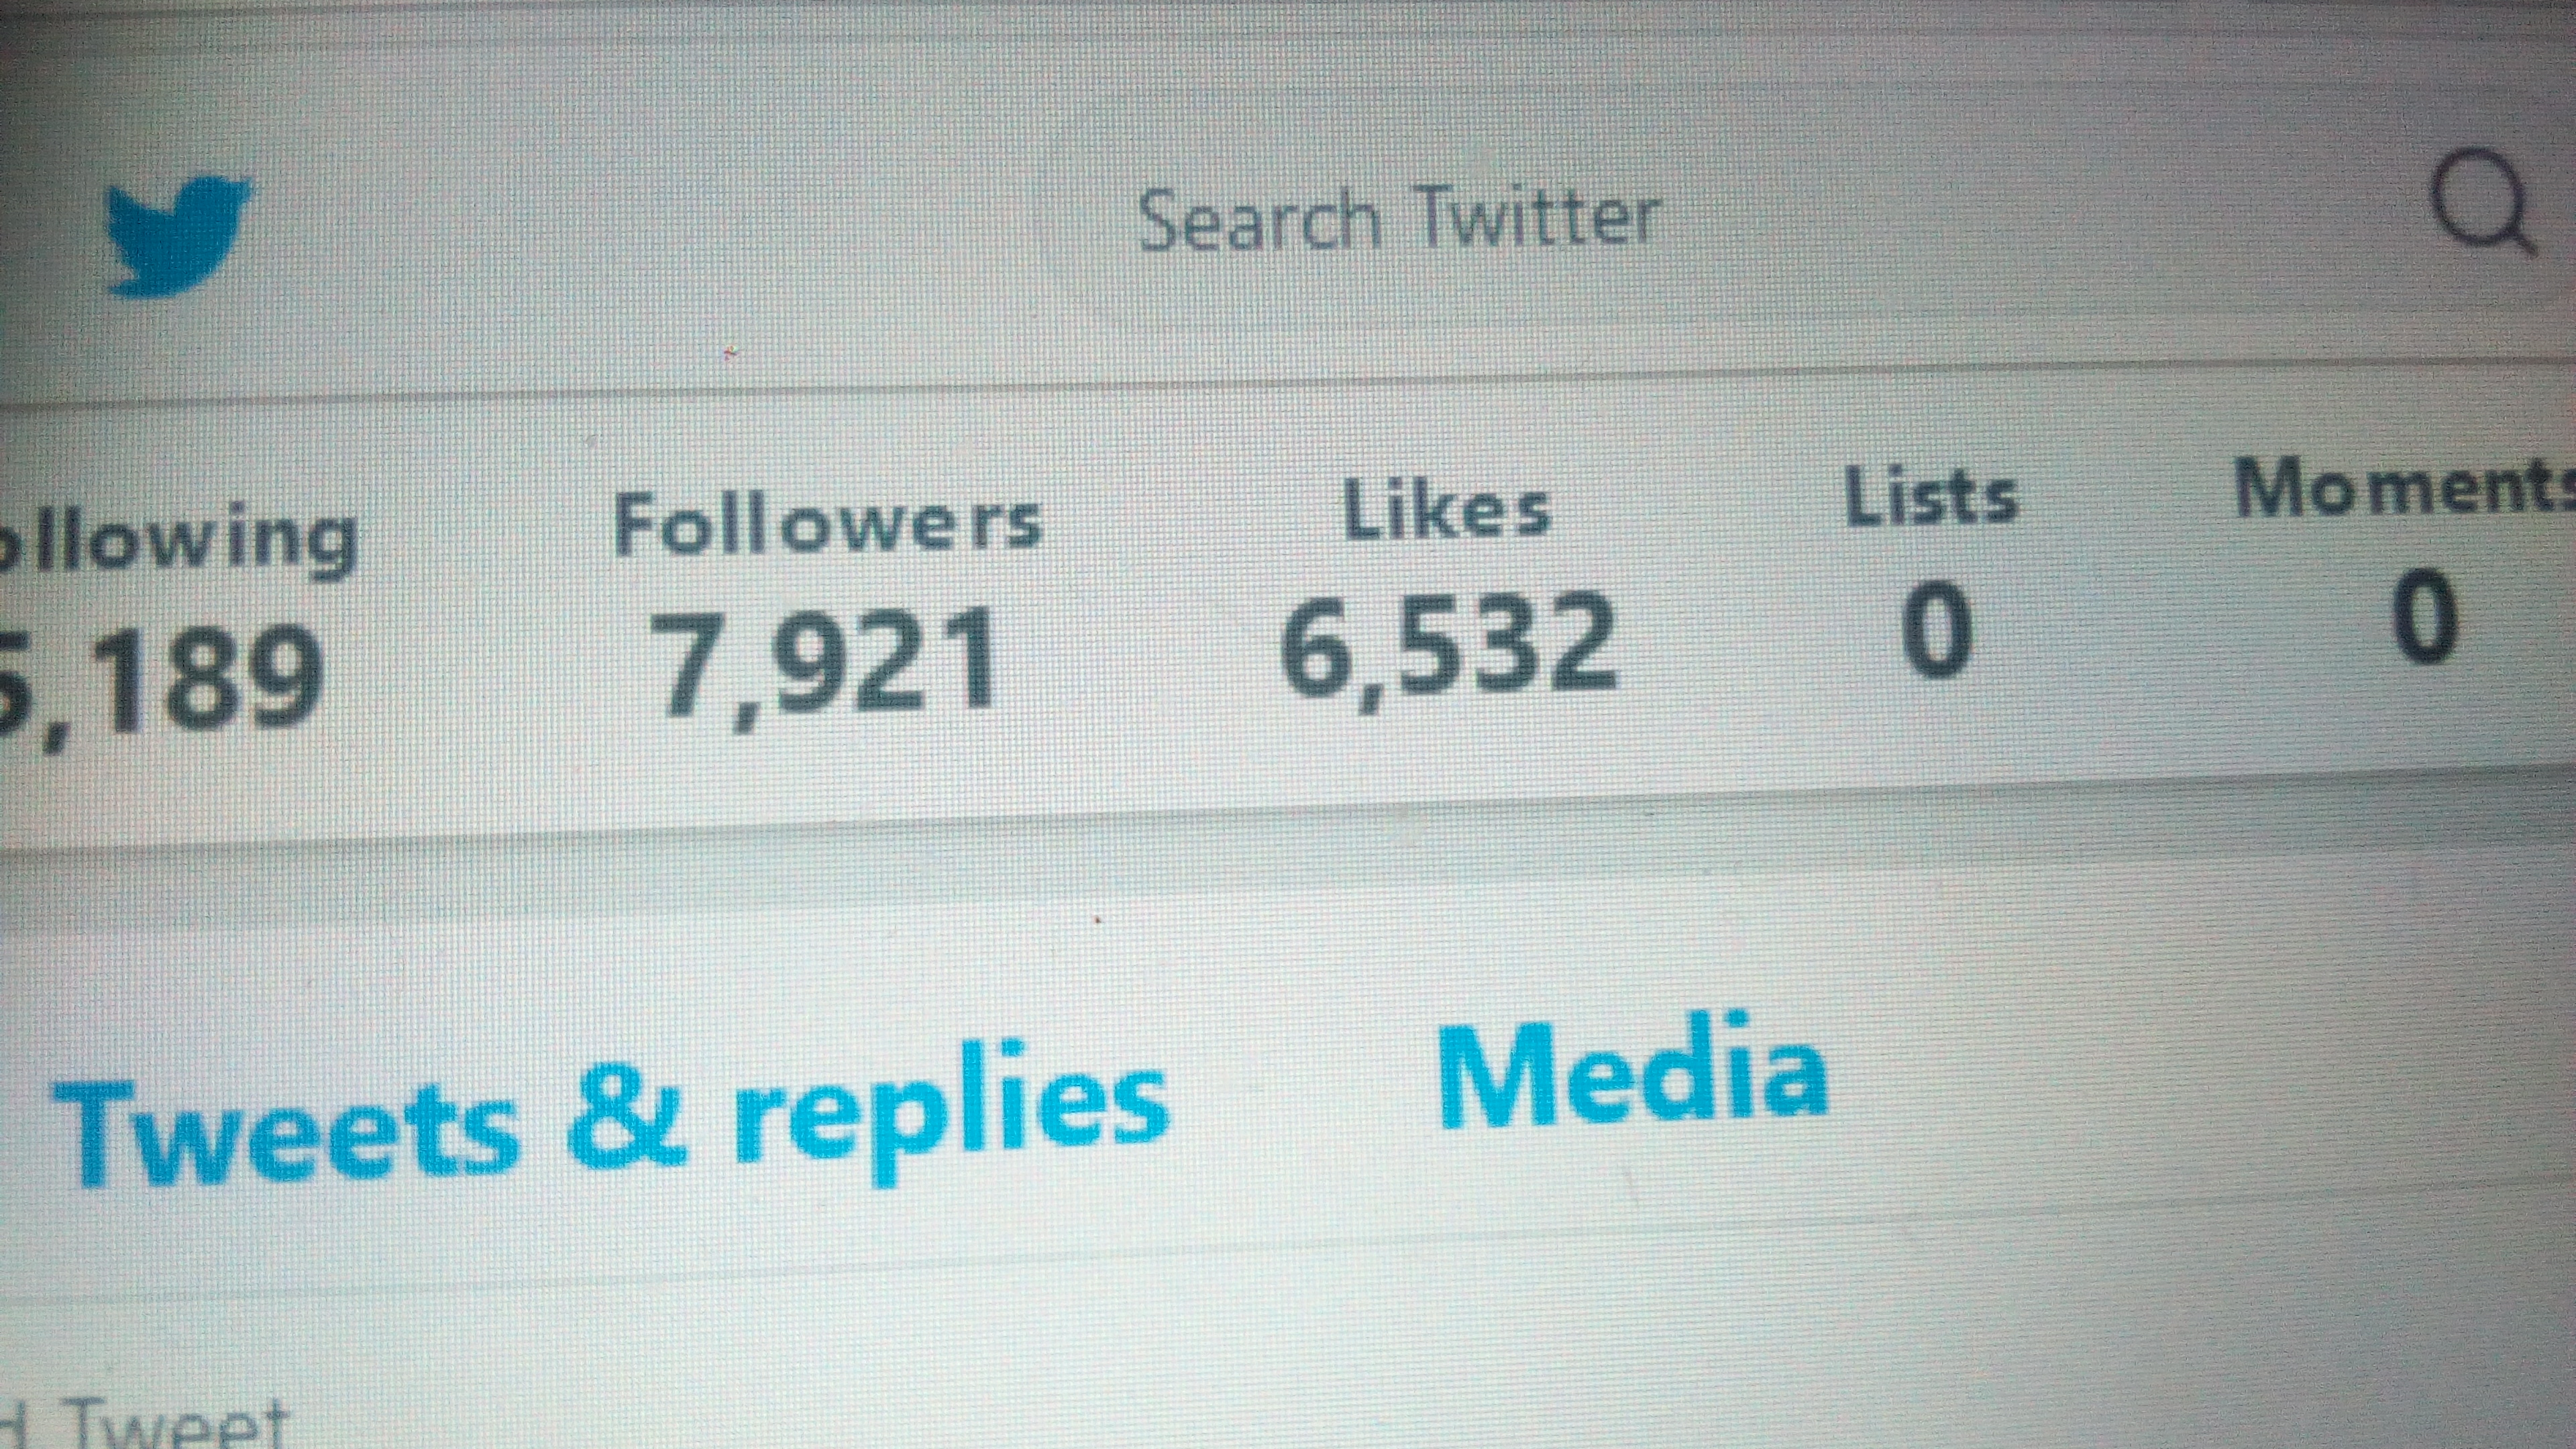 promote your business on my  twitter account with 7kplus active followers for